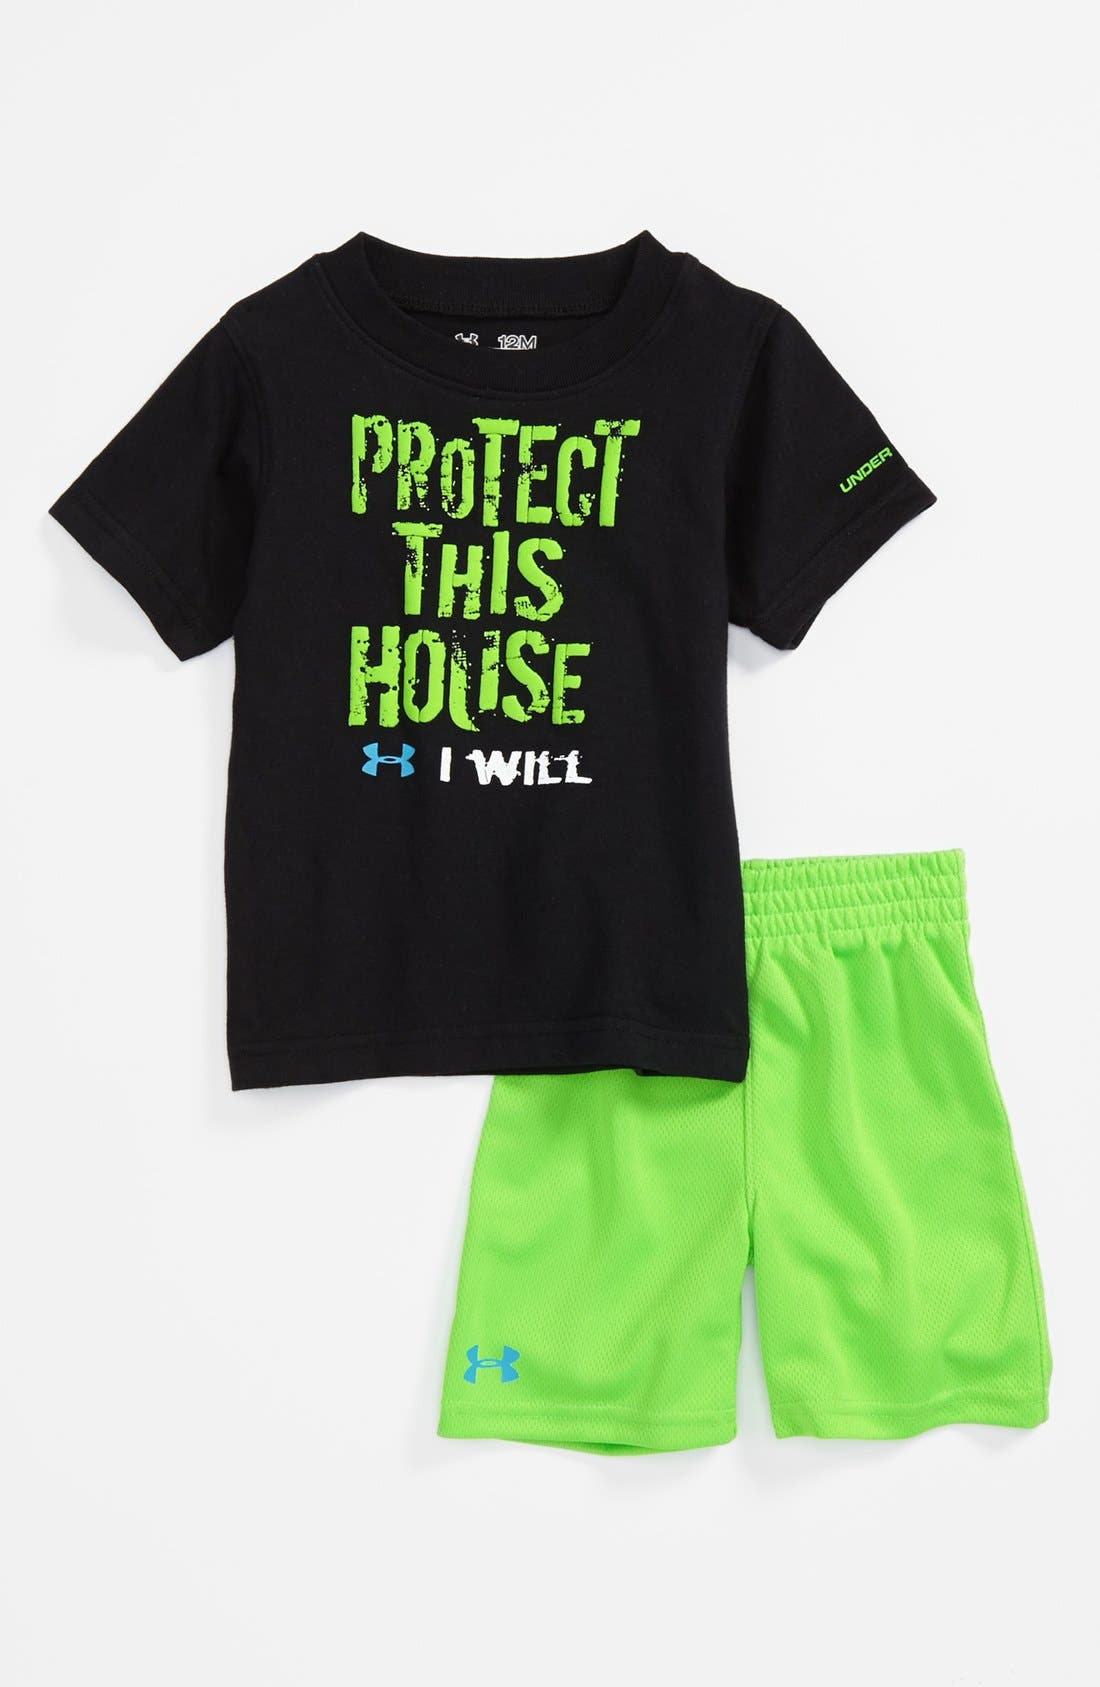 Alternate Image 1 Selected - Under Armour 'Protect This House' T-Shirt & Shorts (Baby Boys)